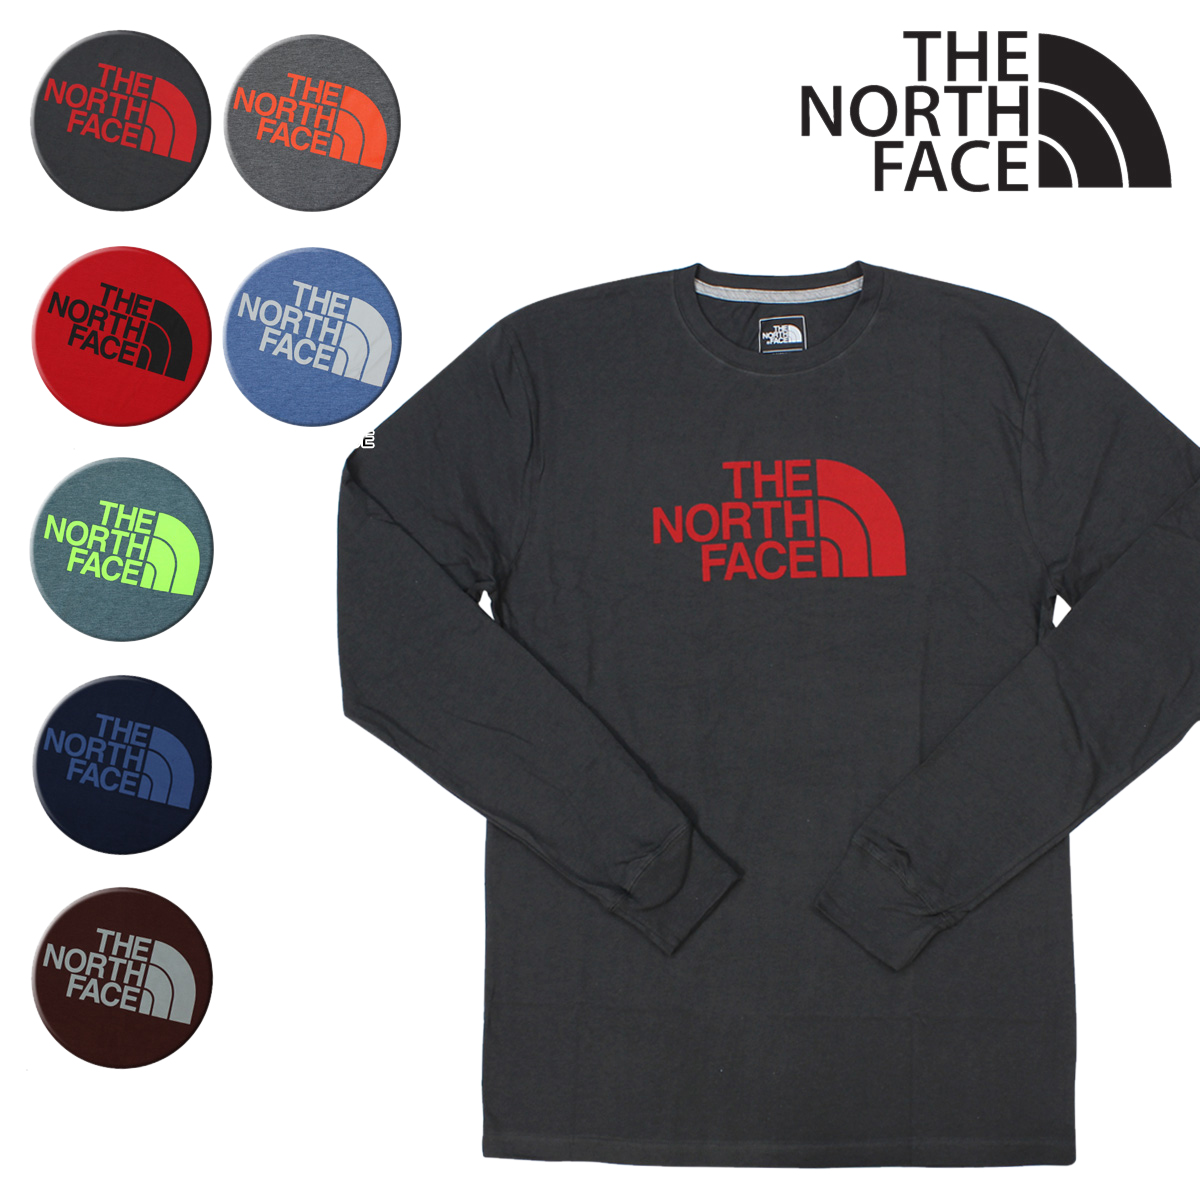 3c95c8e38 [SOLD OUT] THE NORTH FACE north face T shirt Ron T long sleeve MEN'S  LONG-SLEEVE HALF DOME TEE men